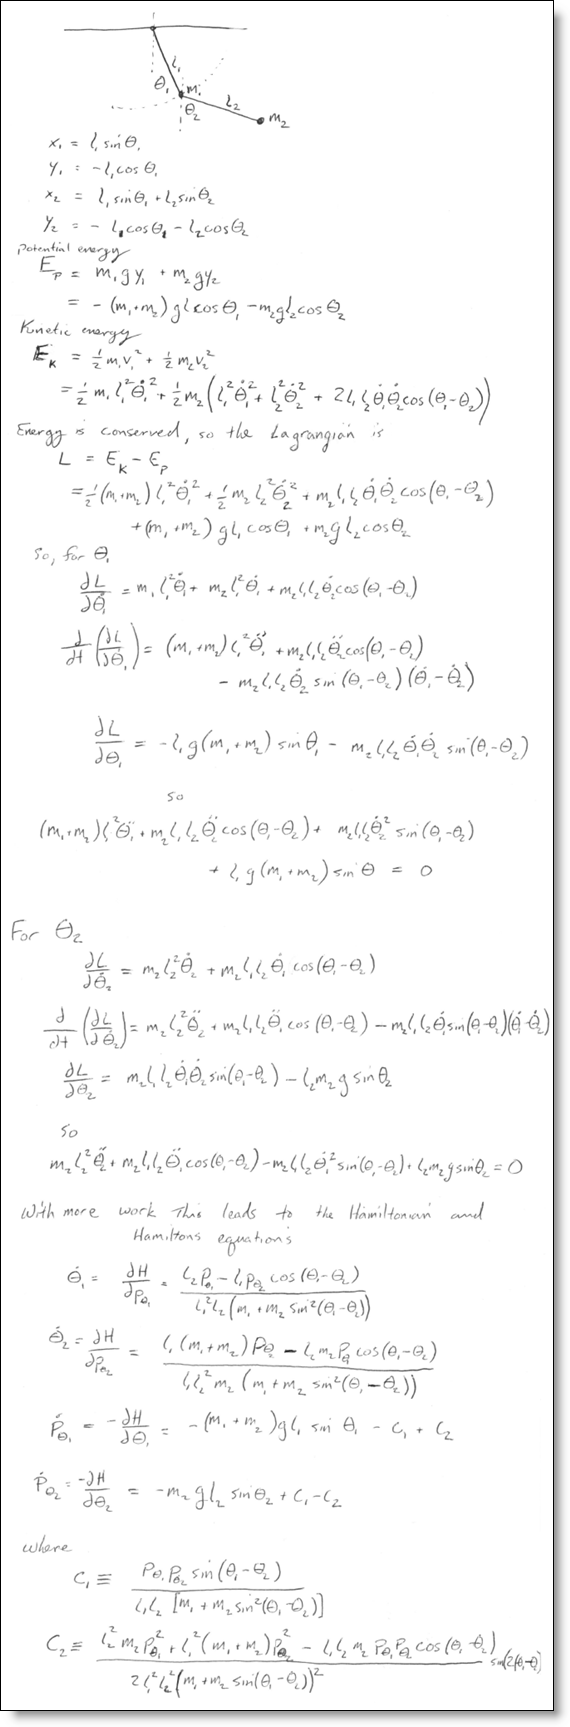 Derivation of the equations of a double pendulum